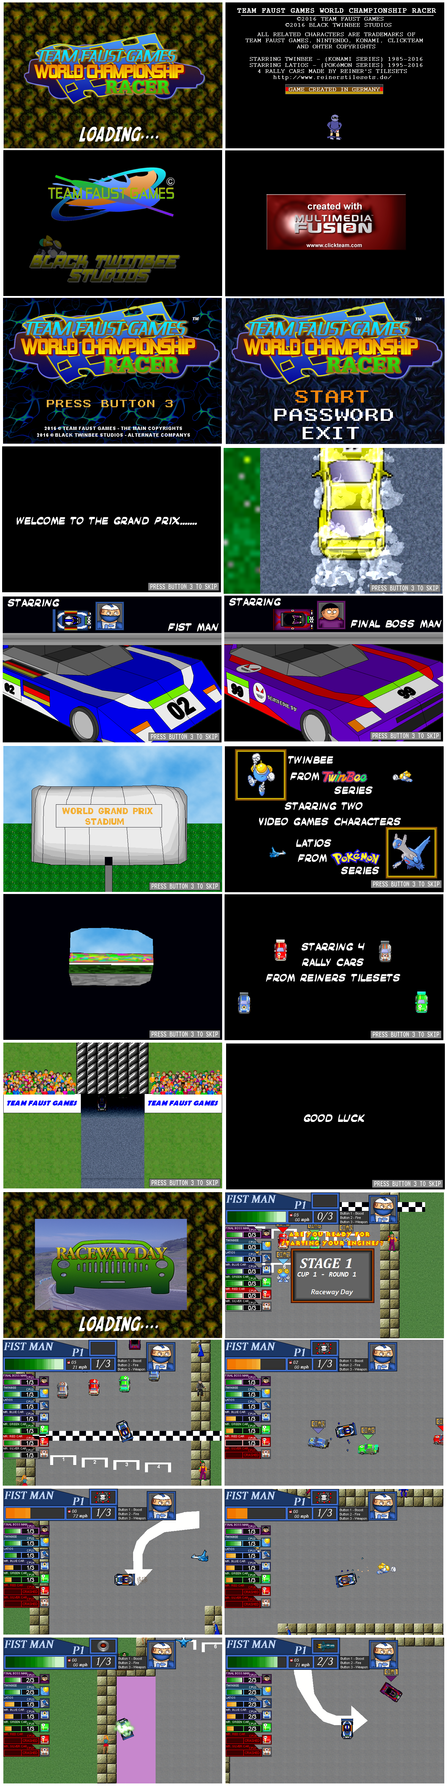 TFG - World Championship Racer - Released by TeamFaustGames